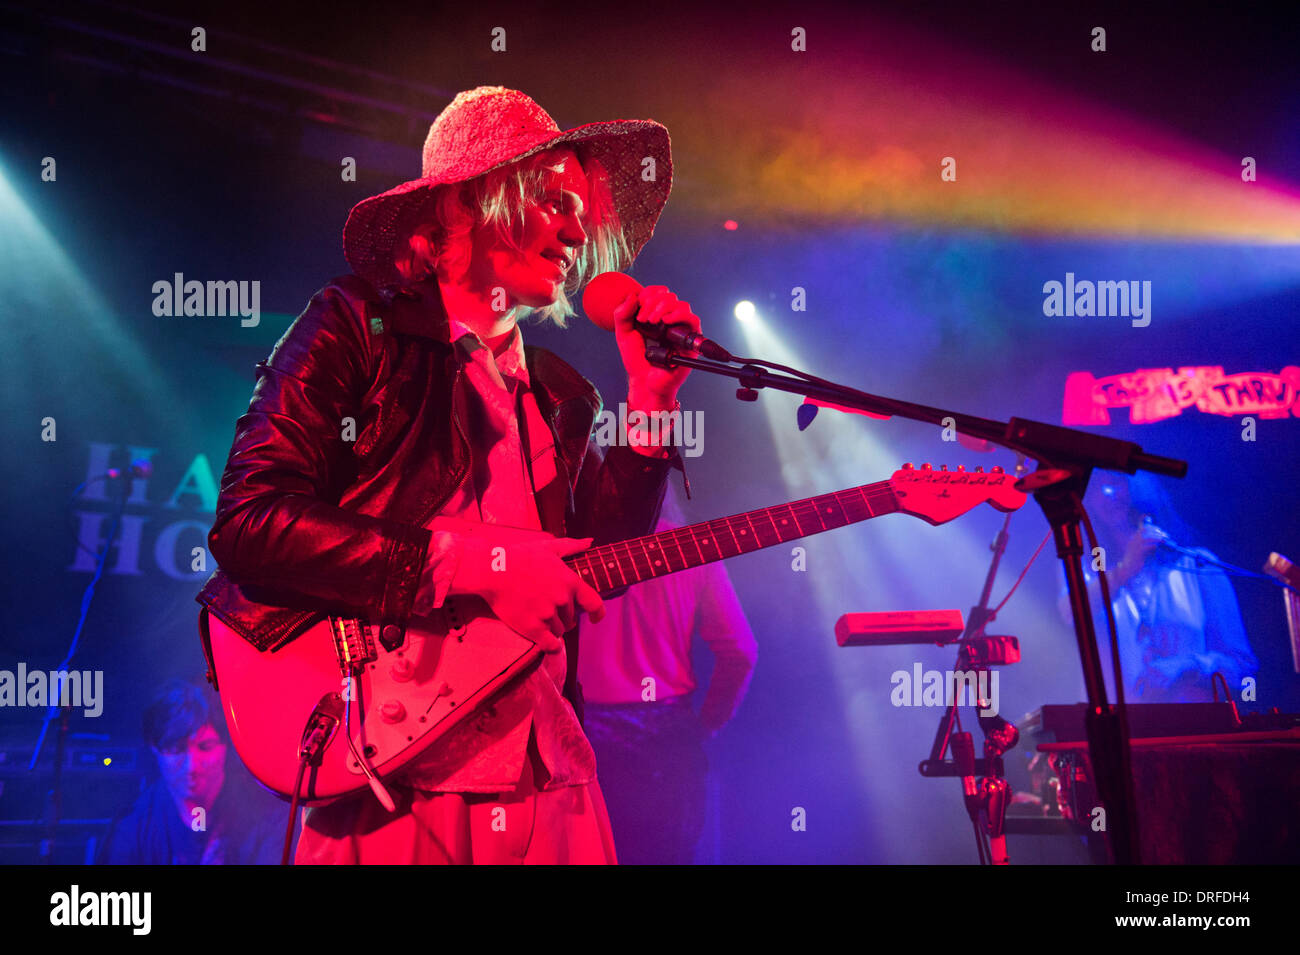 Birmingham, UK. 23rd January 2014. New Zealand indie rock star Connan Mockasin and his band perform a sold out gig at The Hare & Hounds, King's Heath, Birmingham Credit:  John Bentley/Alamy Live News - Stock Image